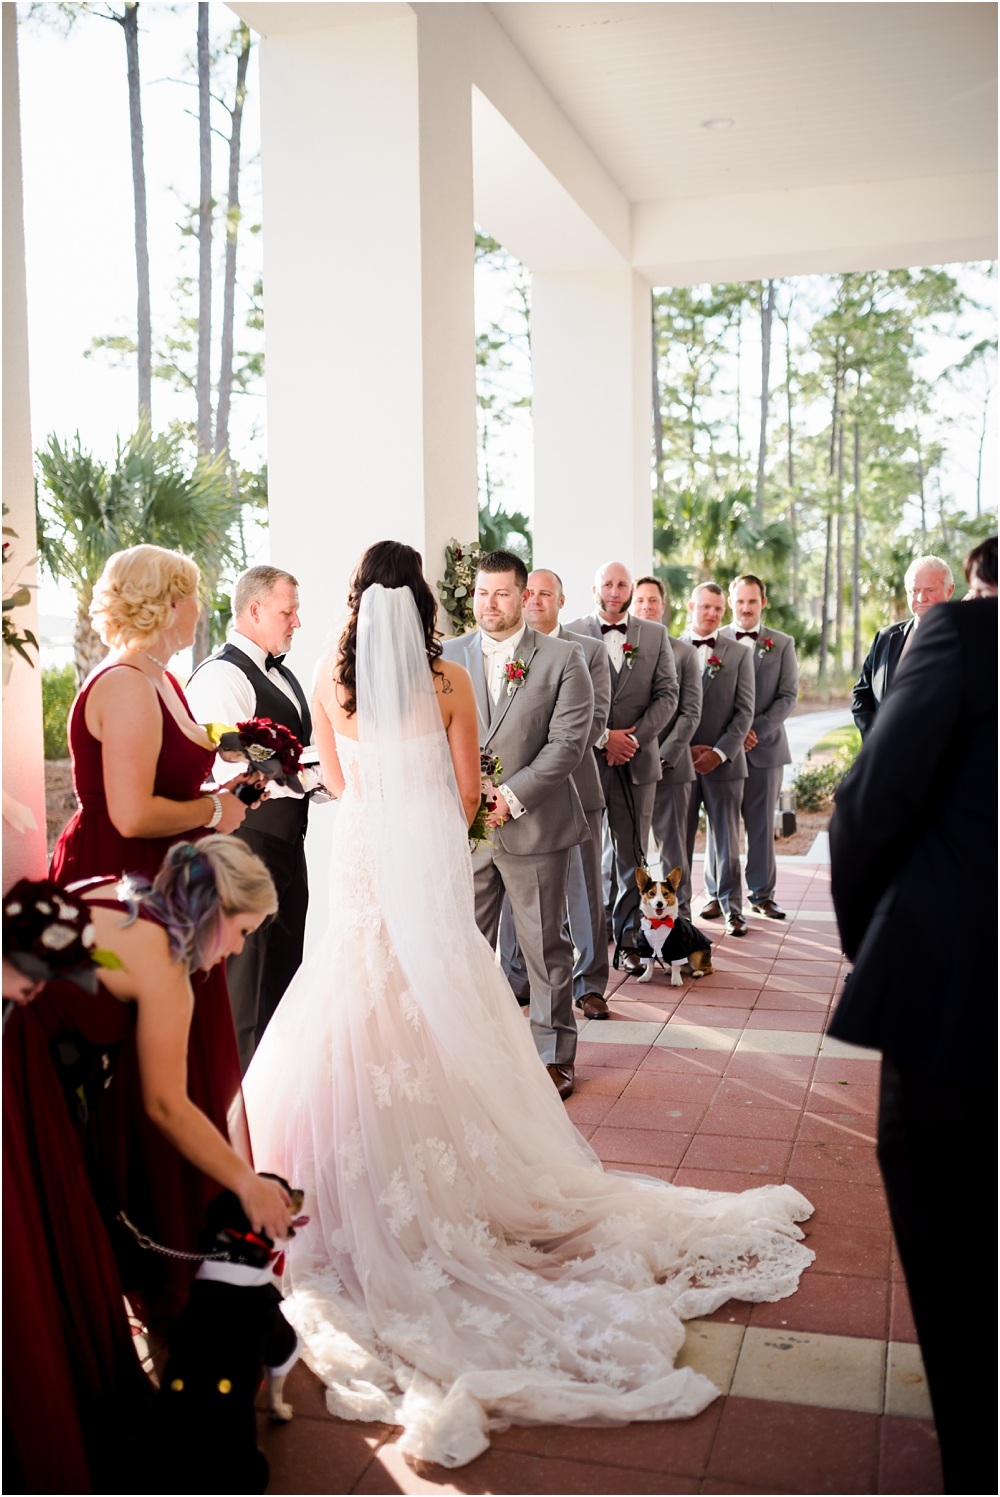 imhof-sheraton-panama-city-beach-florida-wedding-photographer-kiersten-grant-87.jpg